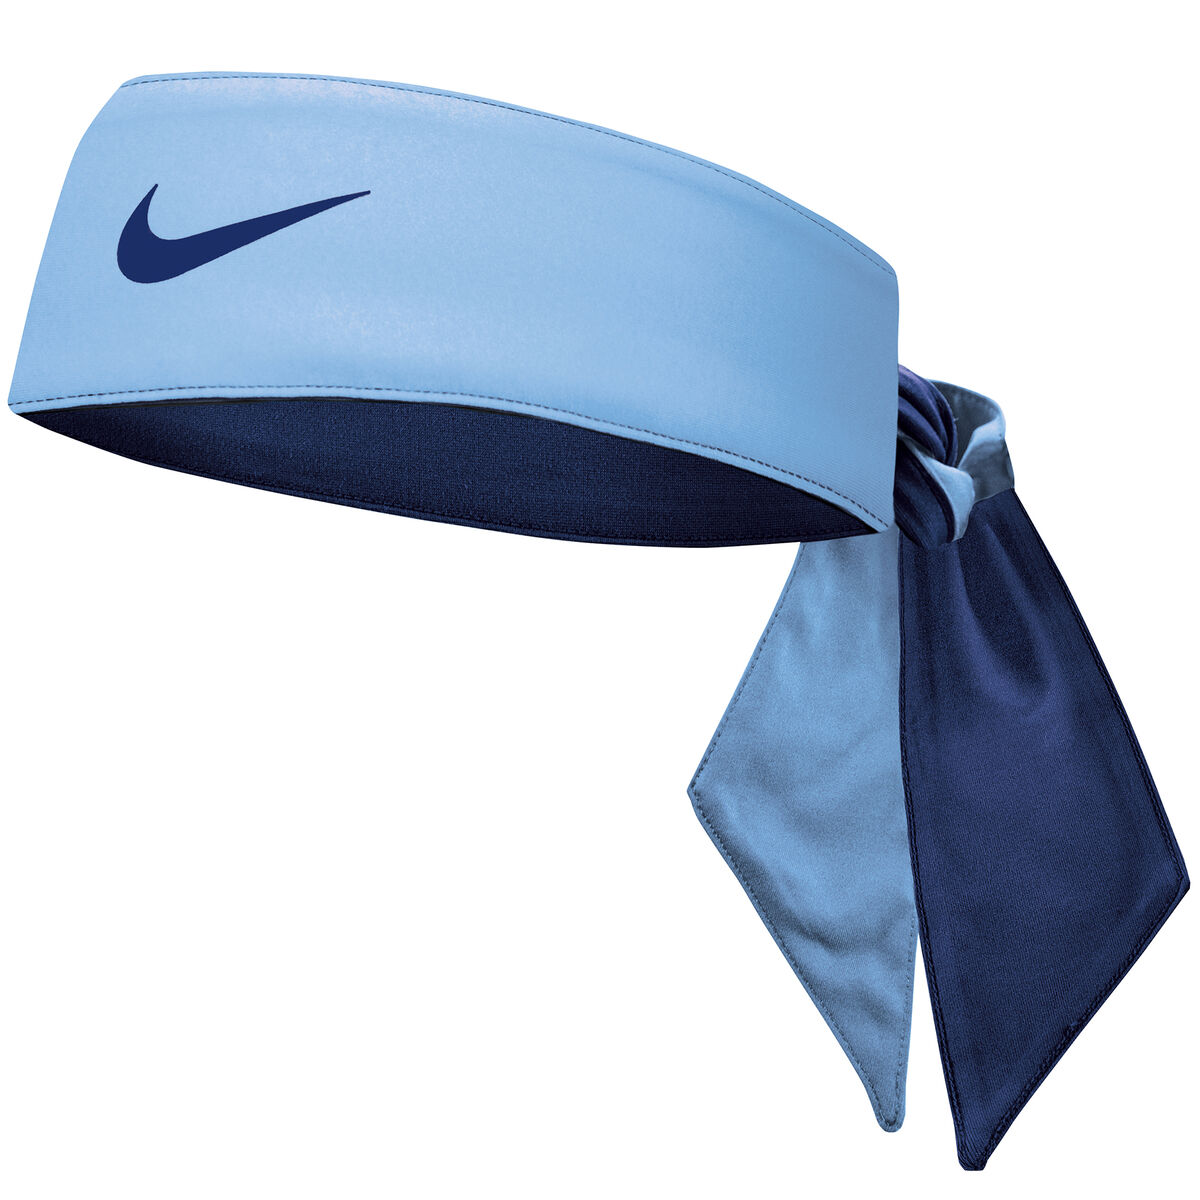 Images. Nike Cooling Head Tie bdb477a36c6